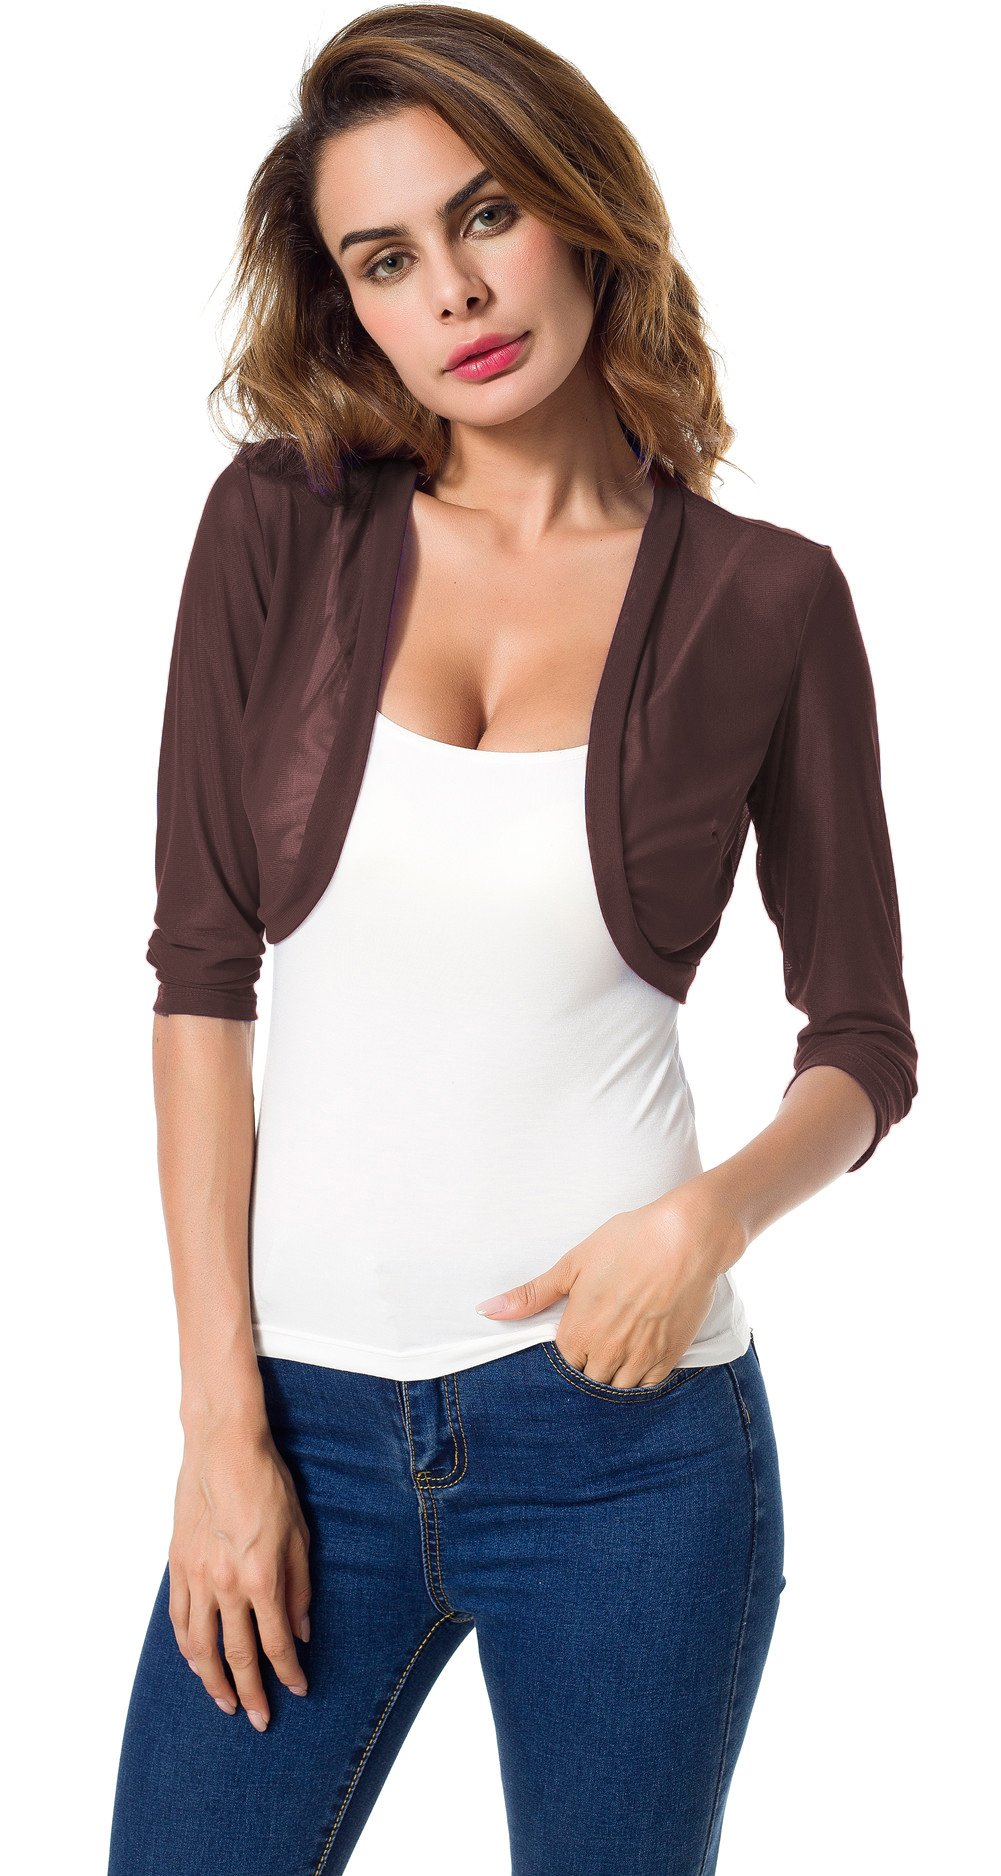 Tandisk Women's 3/4 Sleeve Bolero Sheer Chiffon Shrug Cardigan (M, Coffee)